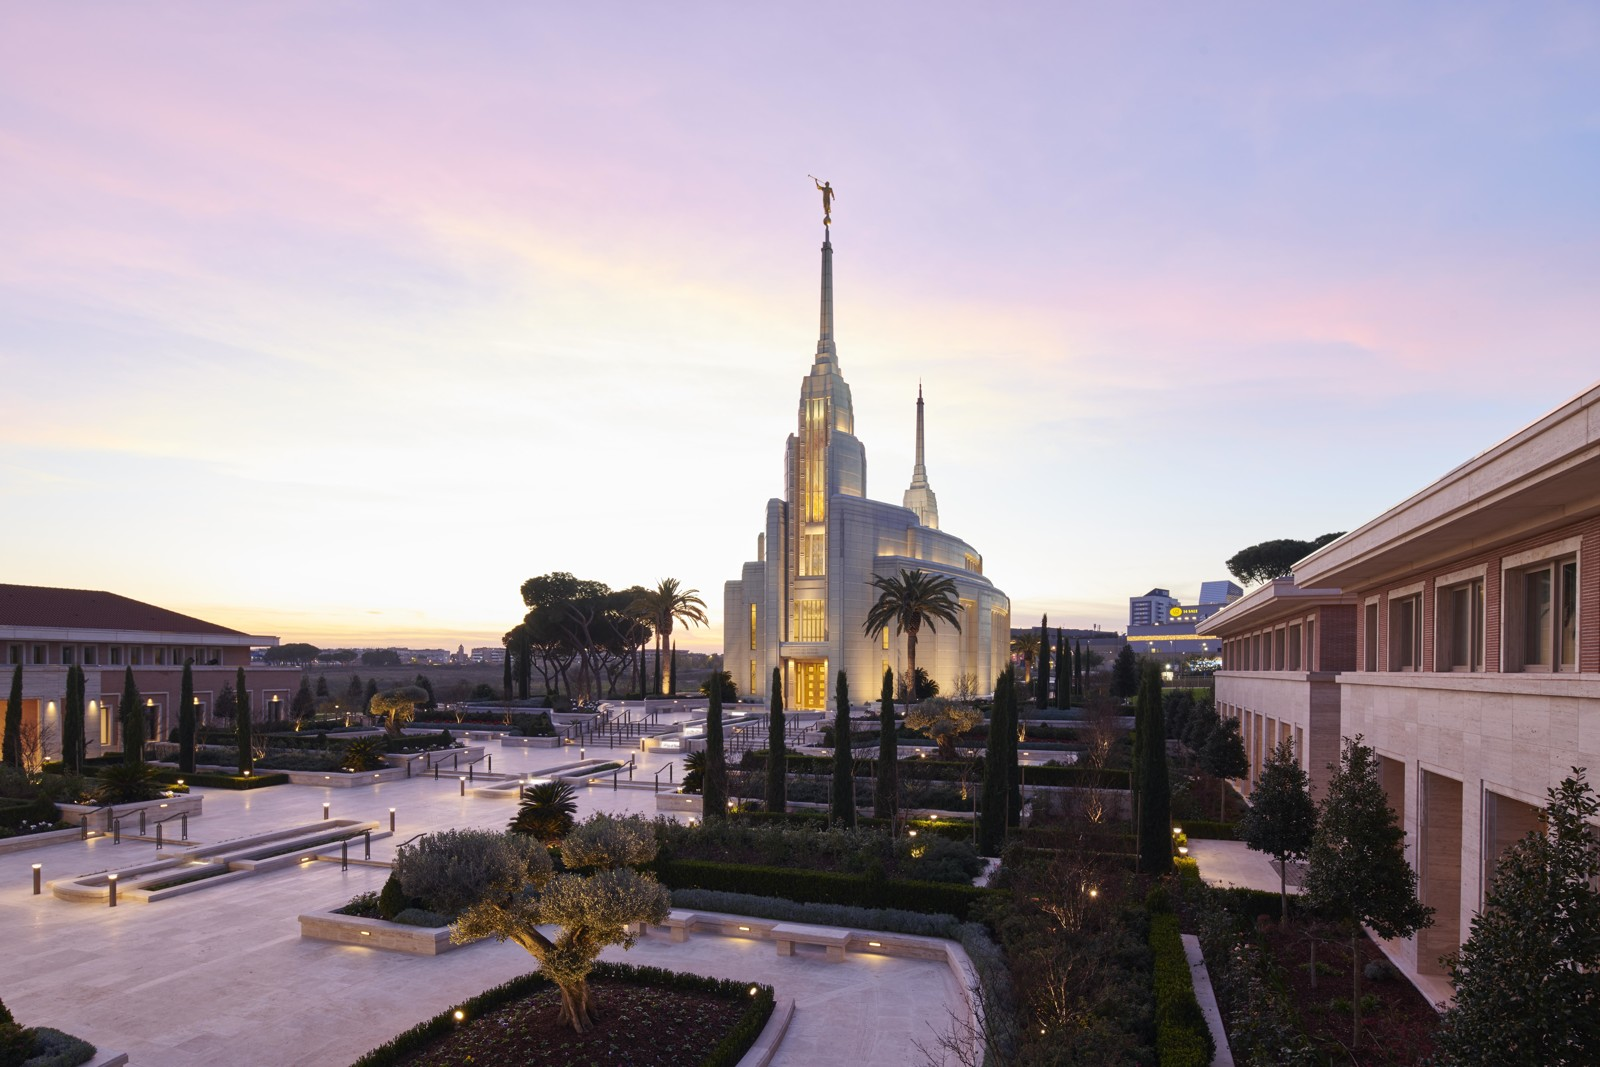 A view of the Rome Italy Temple and the Italian-style piazza on the temple grounds.